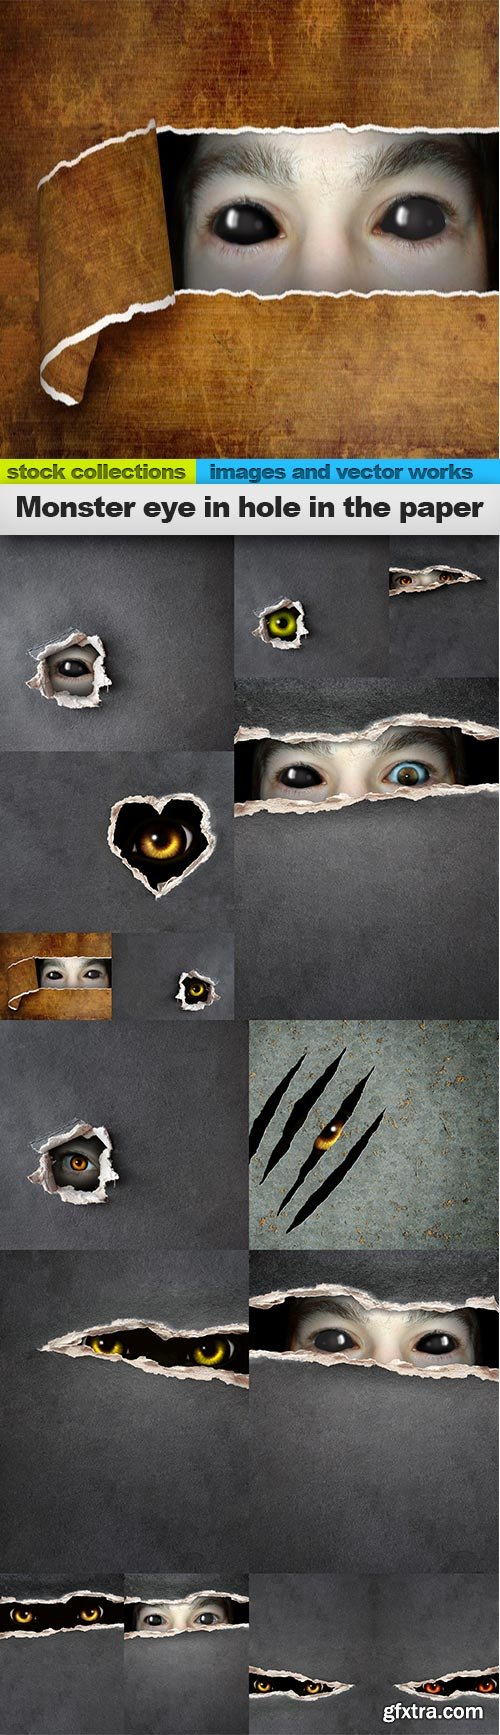 Monster eye in hole in the paper, 15 x UHQ JPEG